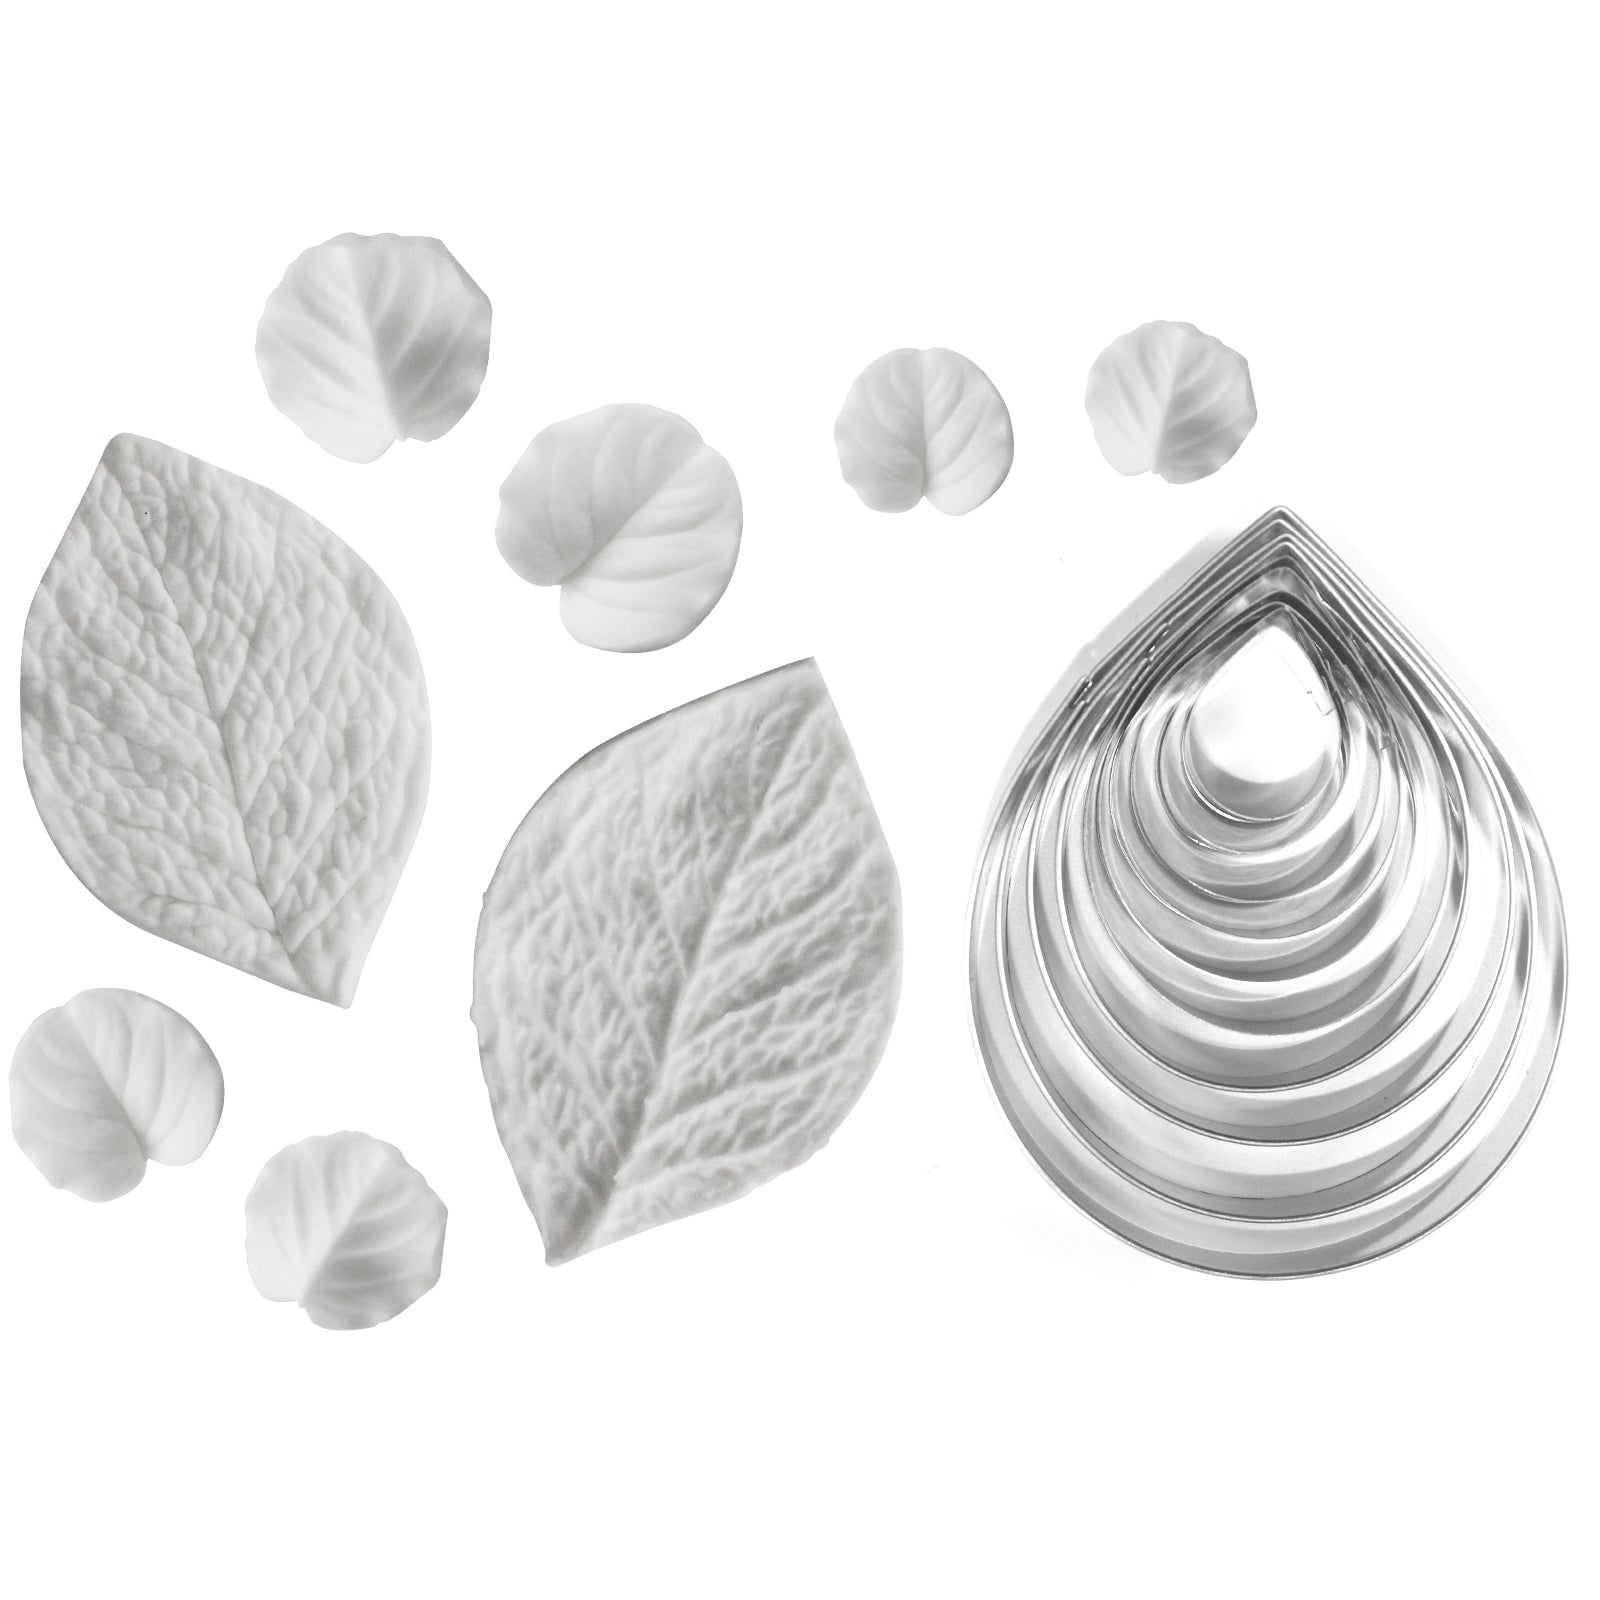 Fondant Leaves Cutters and Leaf Veiners Set